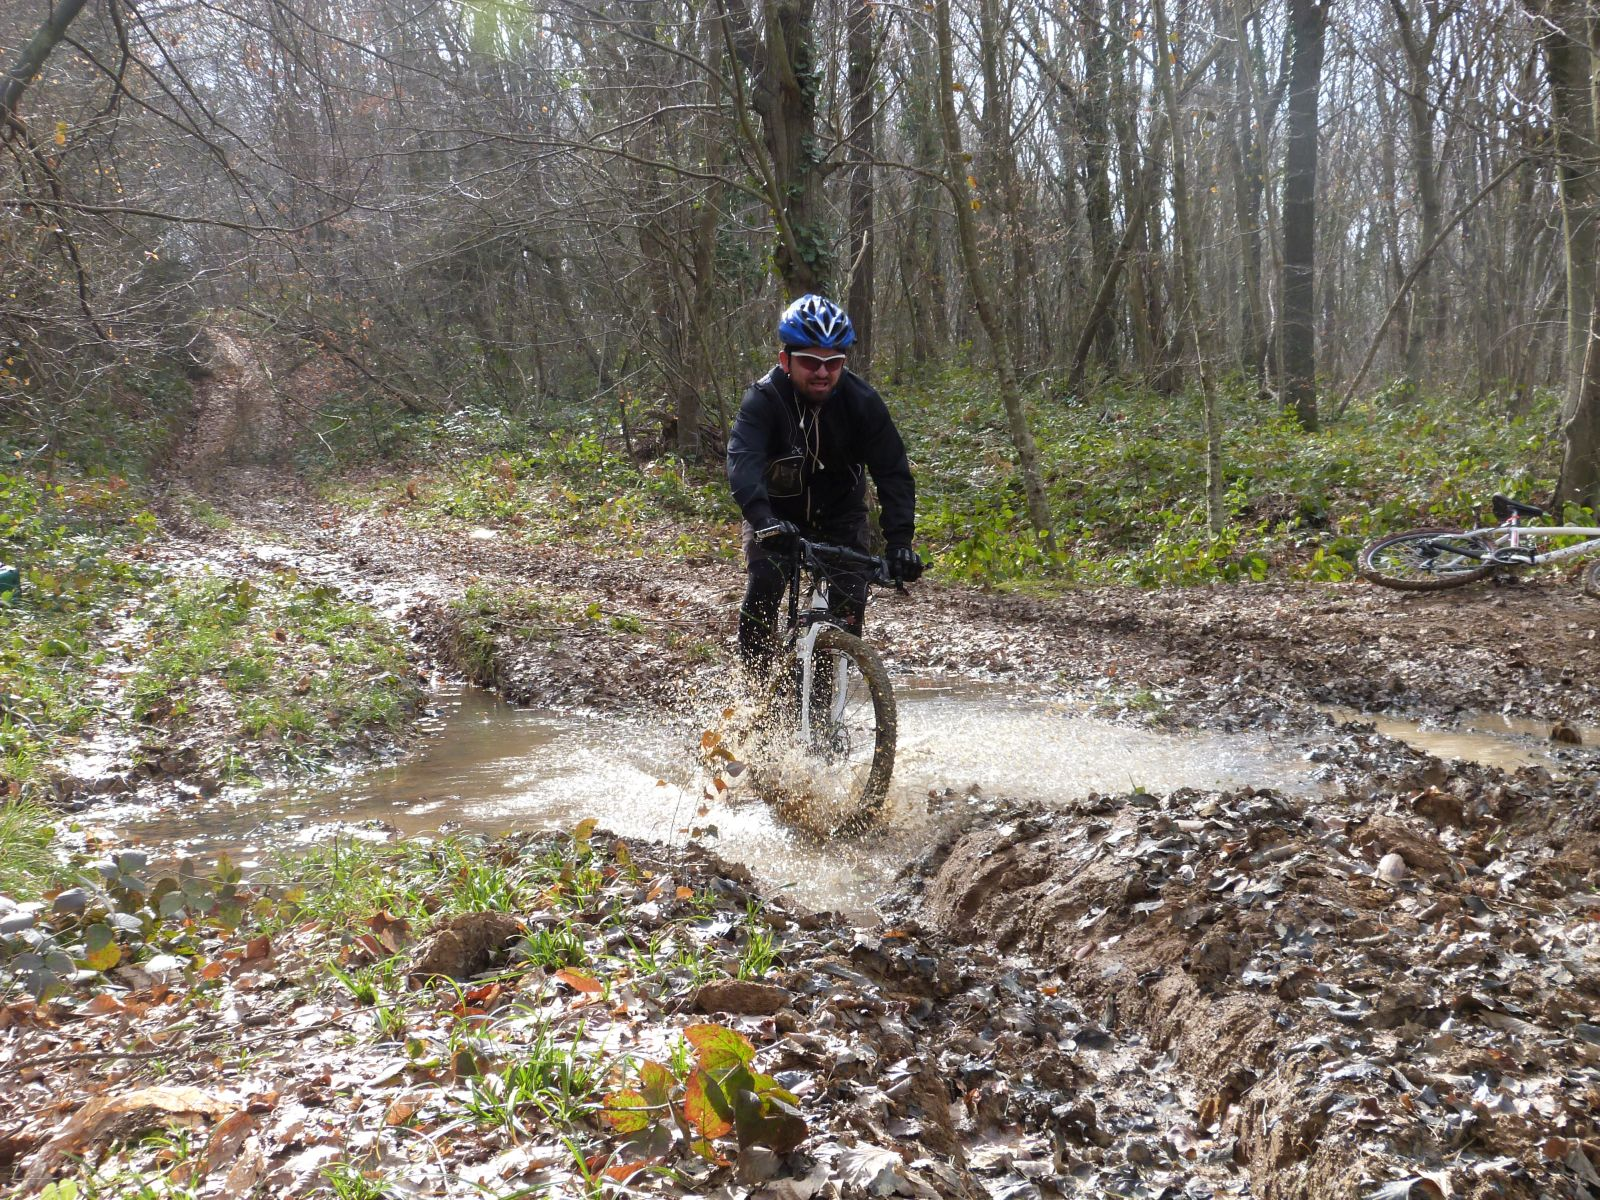 Riding in the mud